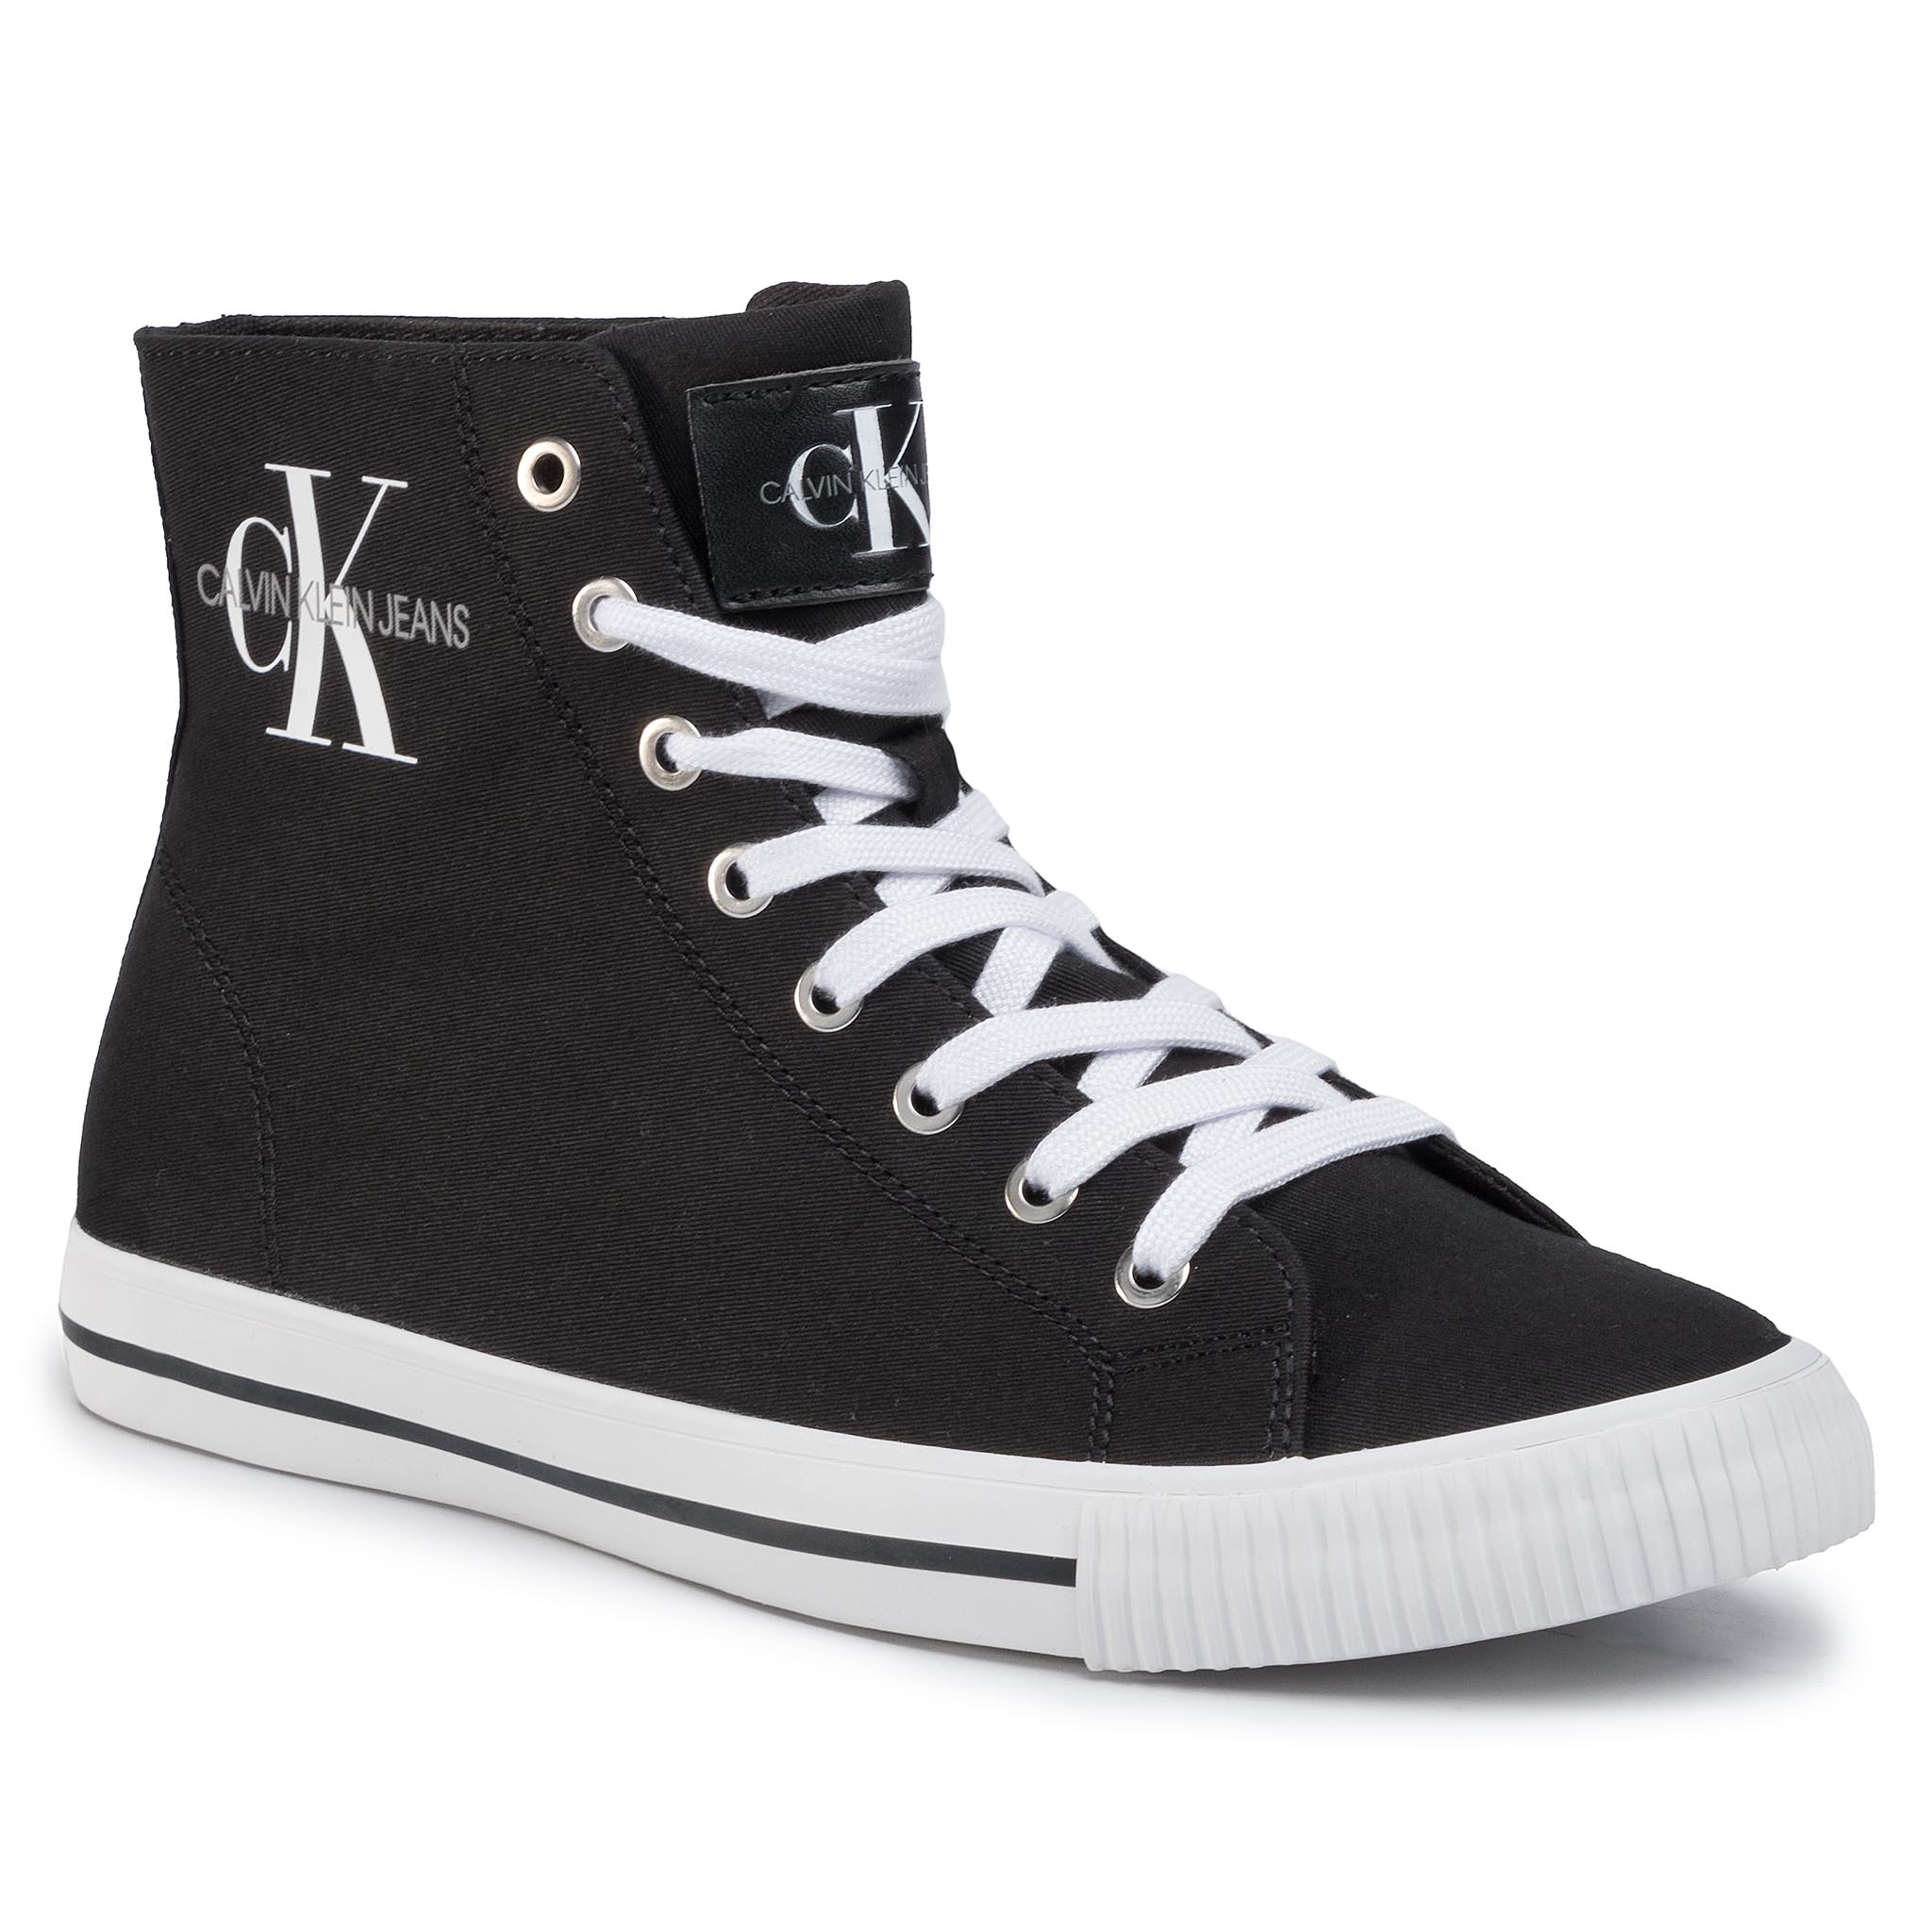 Image of Sneakers CALVIN KLEIN JEANS - Augusto B4S0671 Black